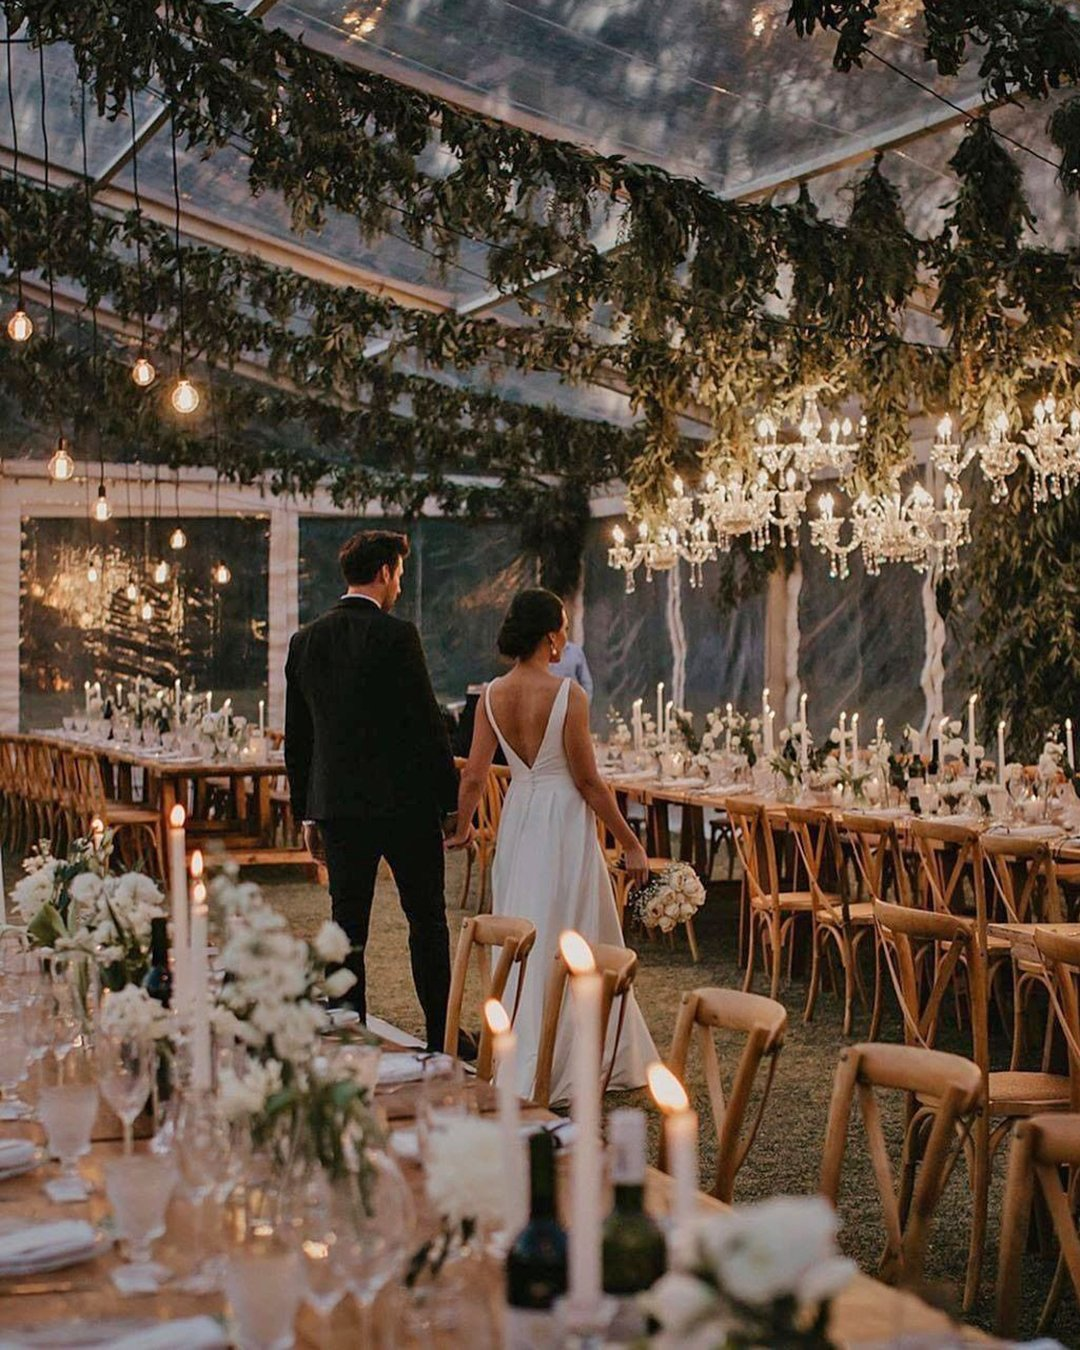 popular instagram posts 2020 venue with candle greenery boho vanillaphotography